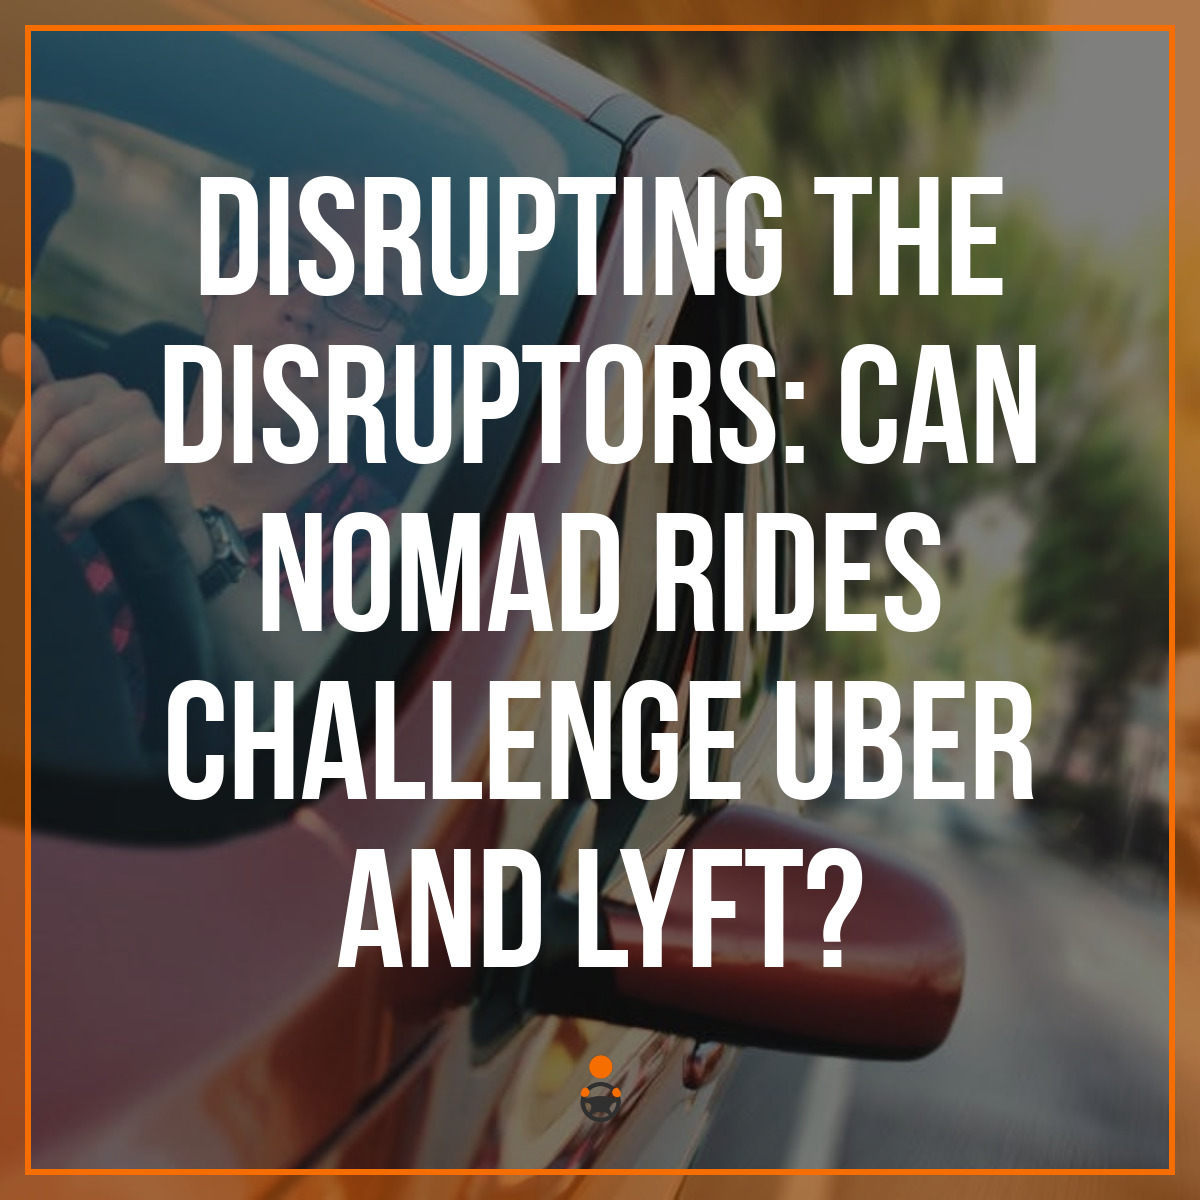 Disrupting the Disruptors: Can Nomad Rides Challenge Uber and Lyft?